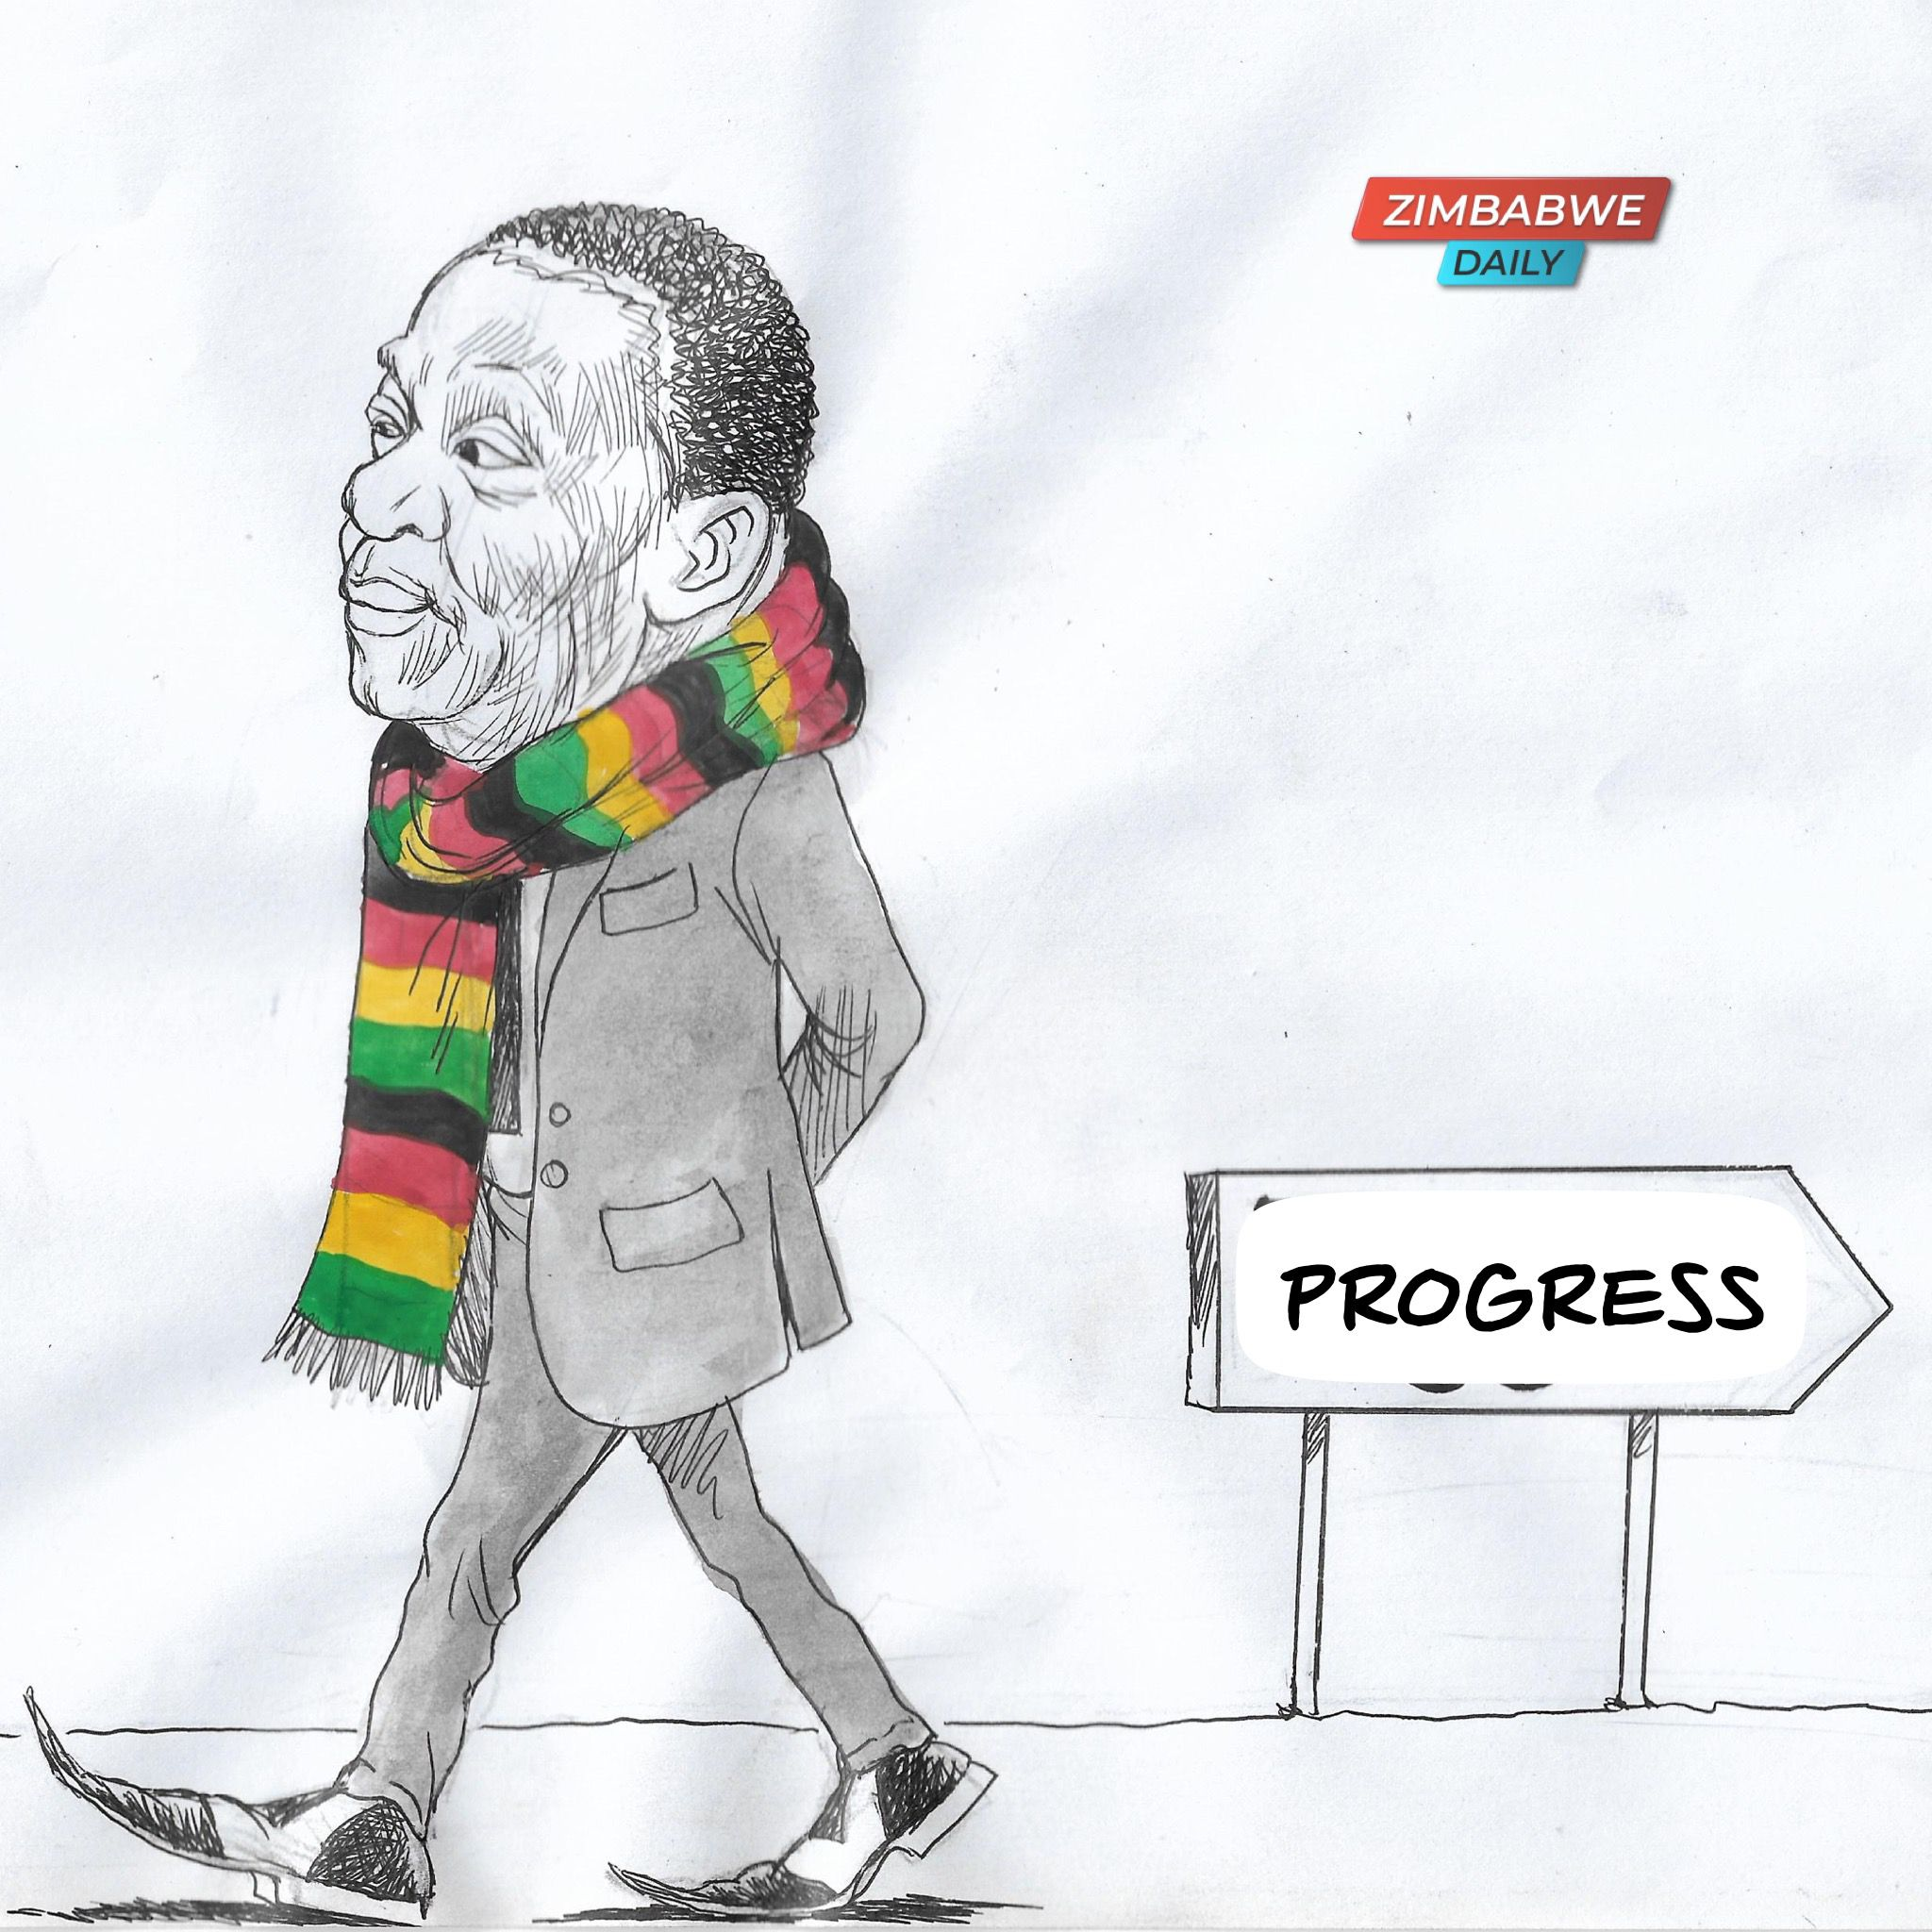 Sanctions or No sanctions we are in the direction: Zanu Pf